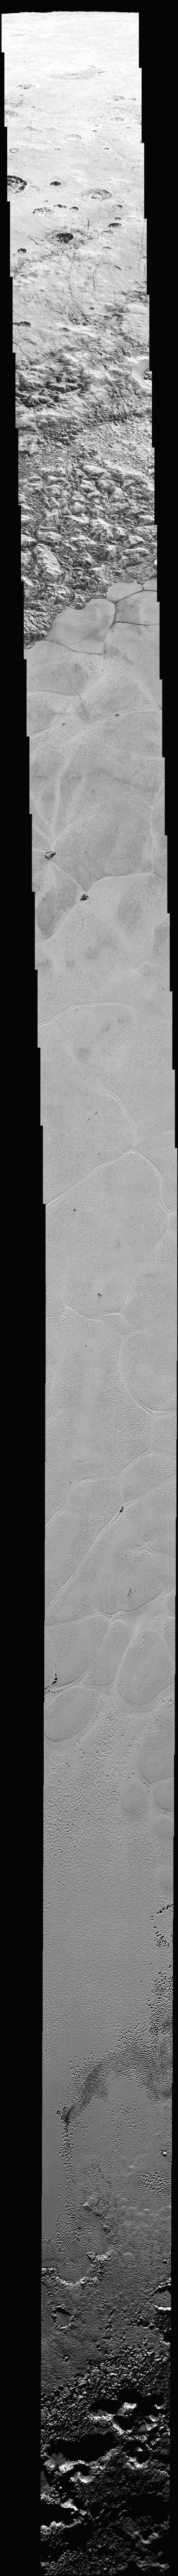 The mosaic strip ? extending across the hemisphere that faced the New Horizons spacecraft as it flew past Pluto on July 14 last year ? now includes all of the highest-resolution images taken by the ...